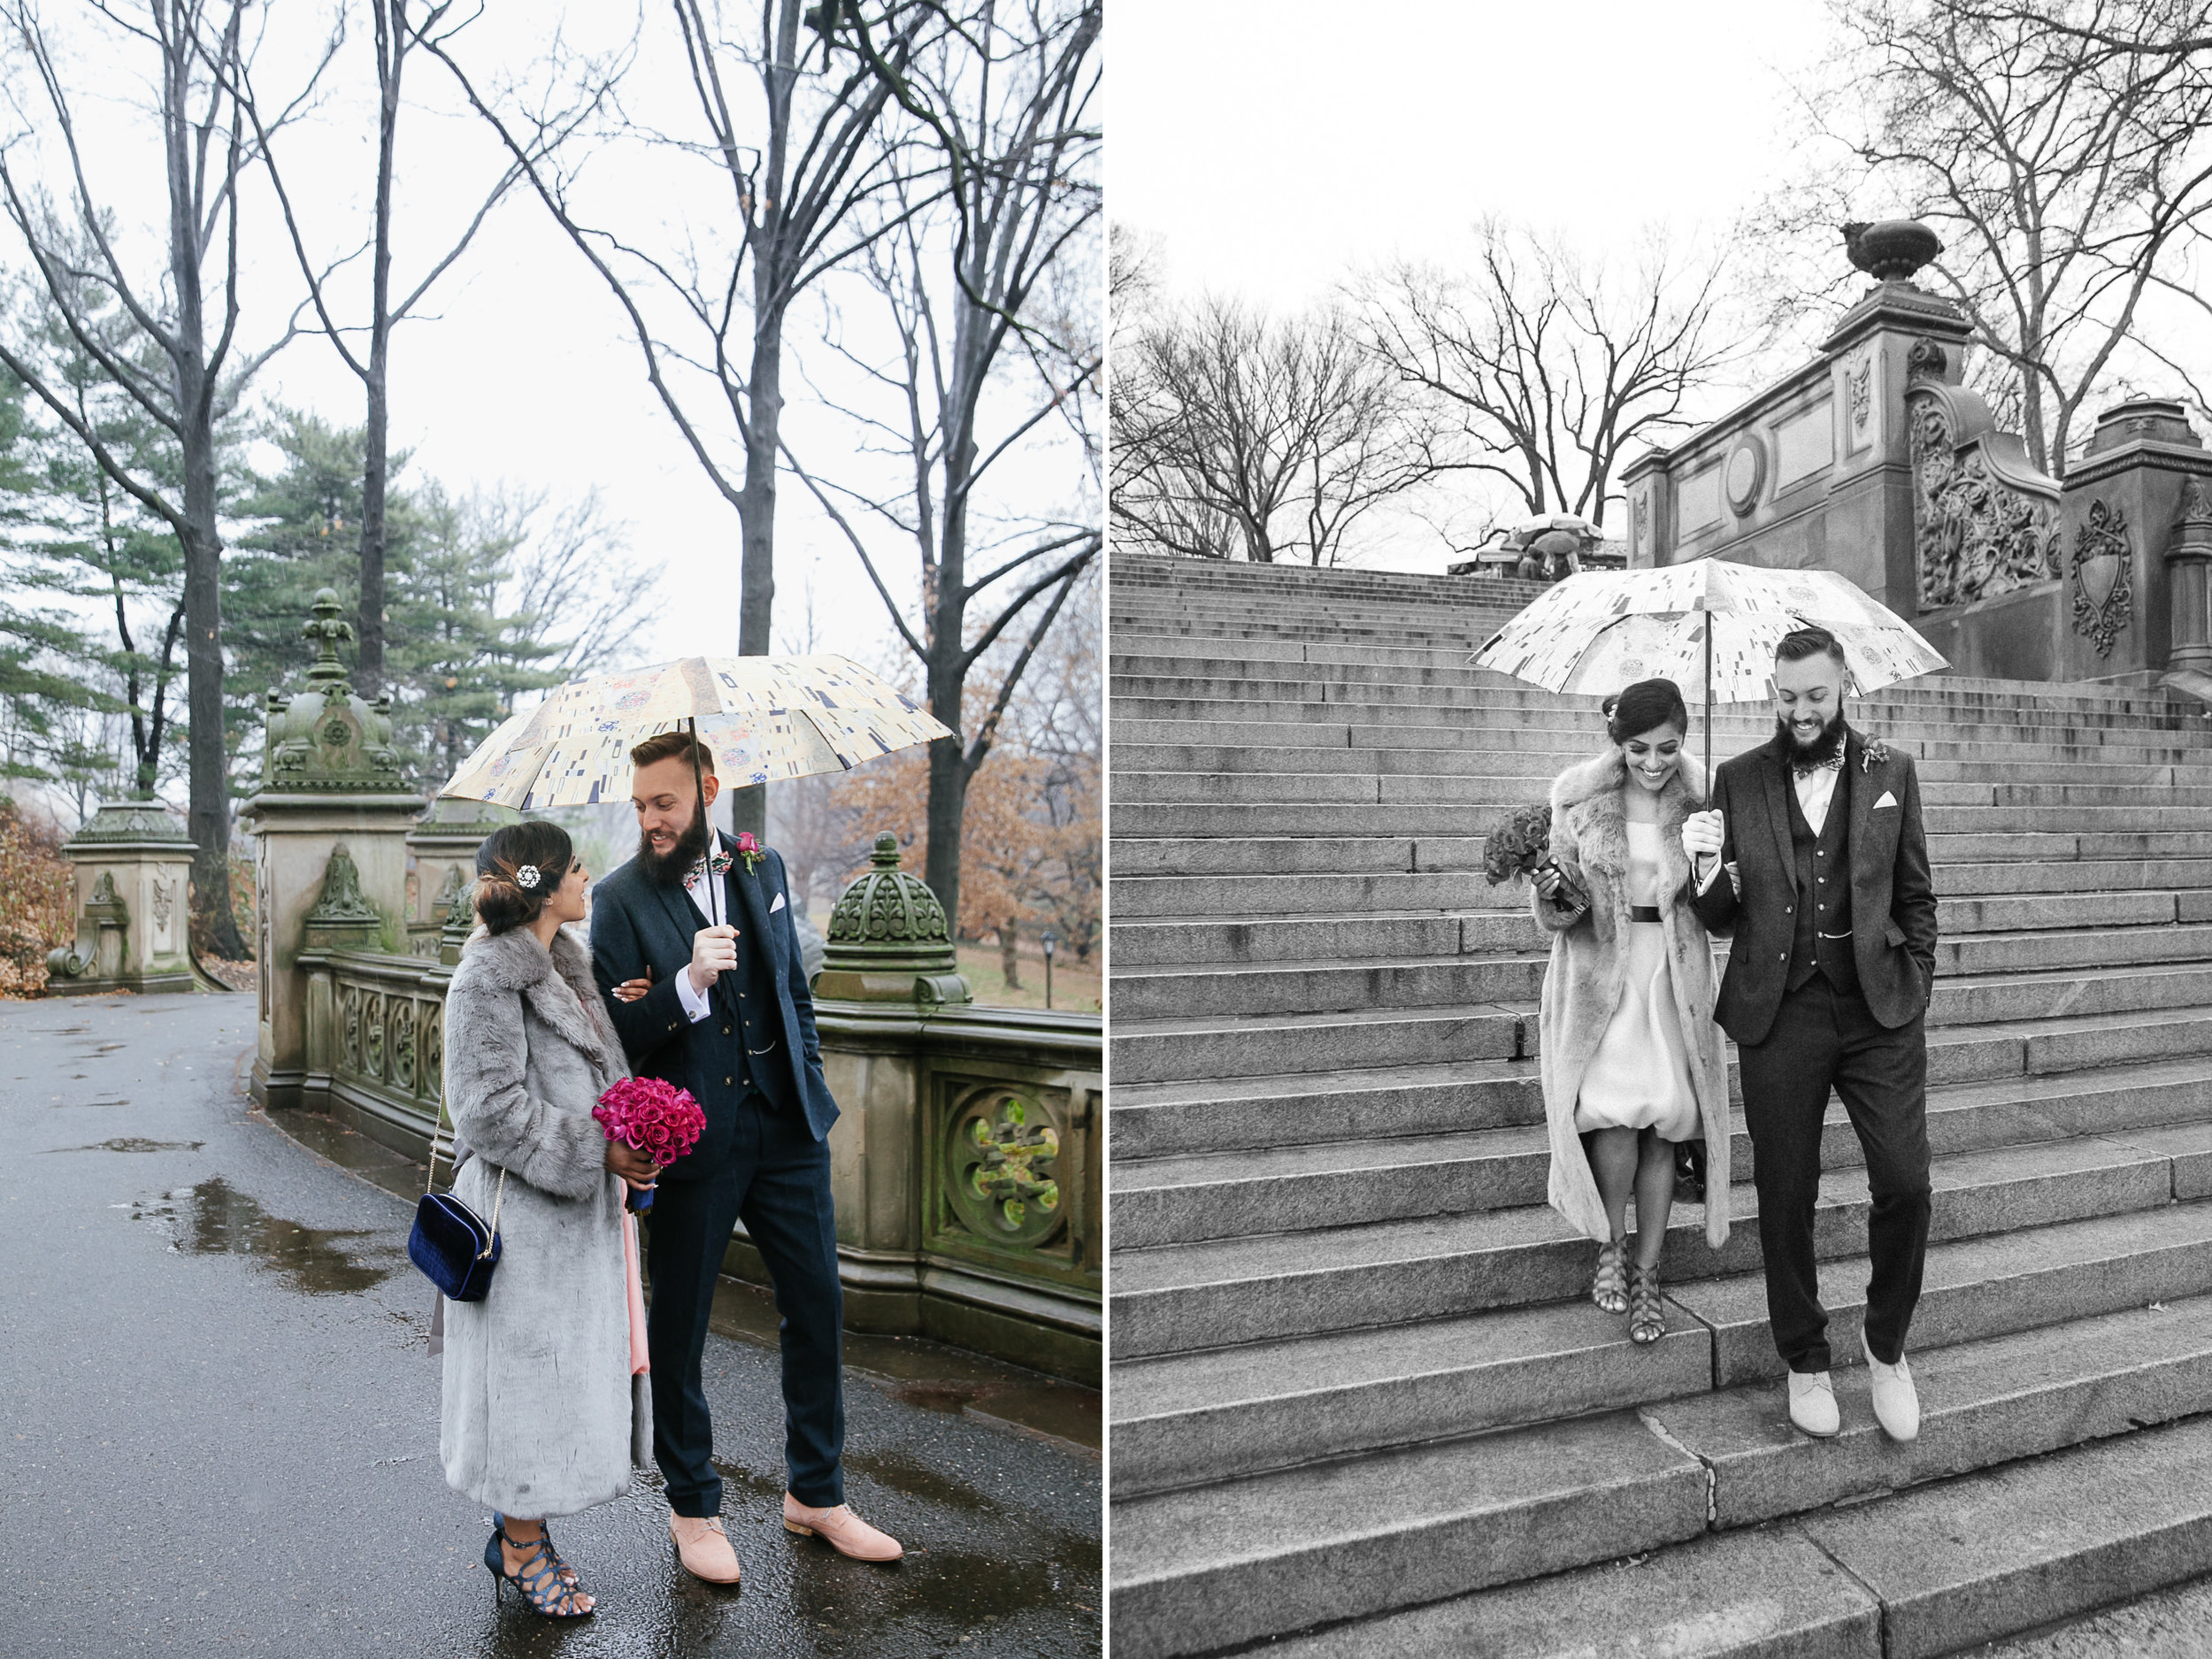 Central-park-wedding-S&K-10.jpg